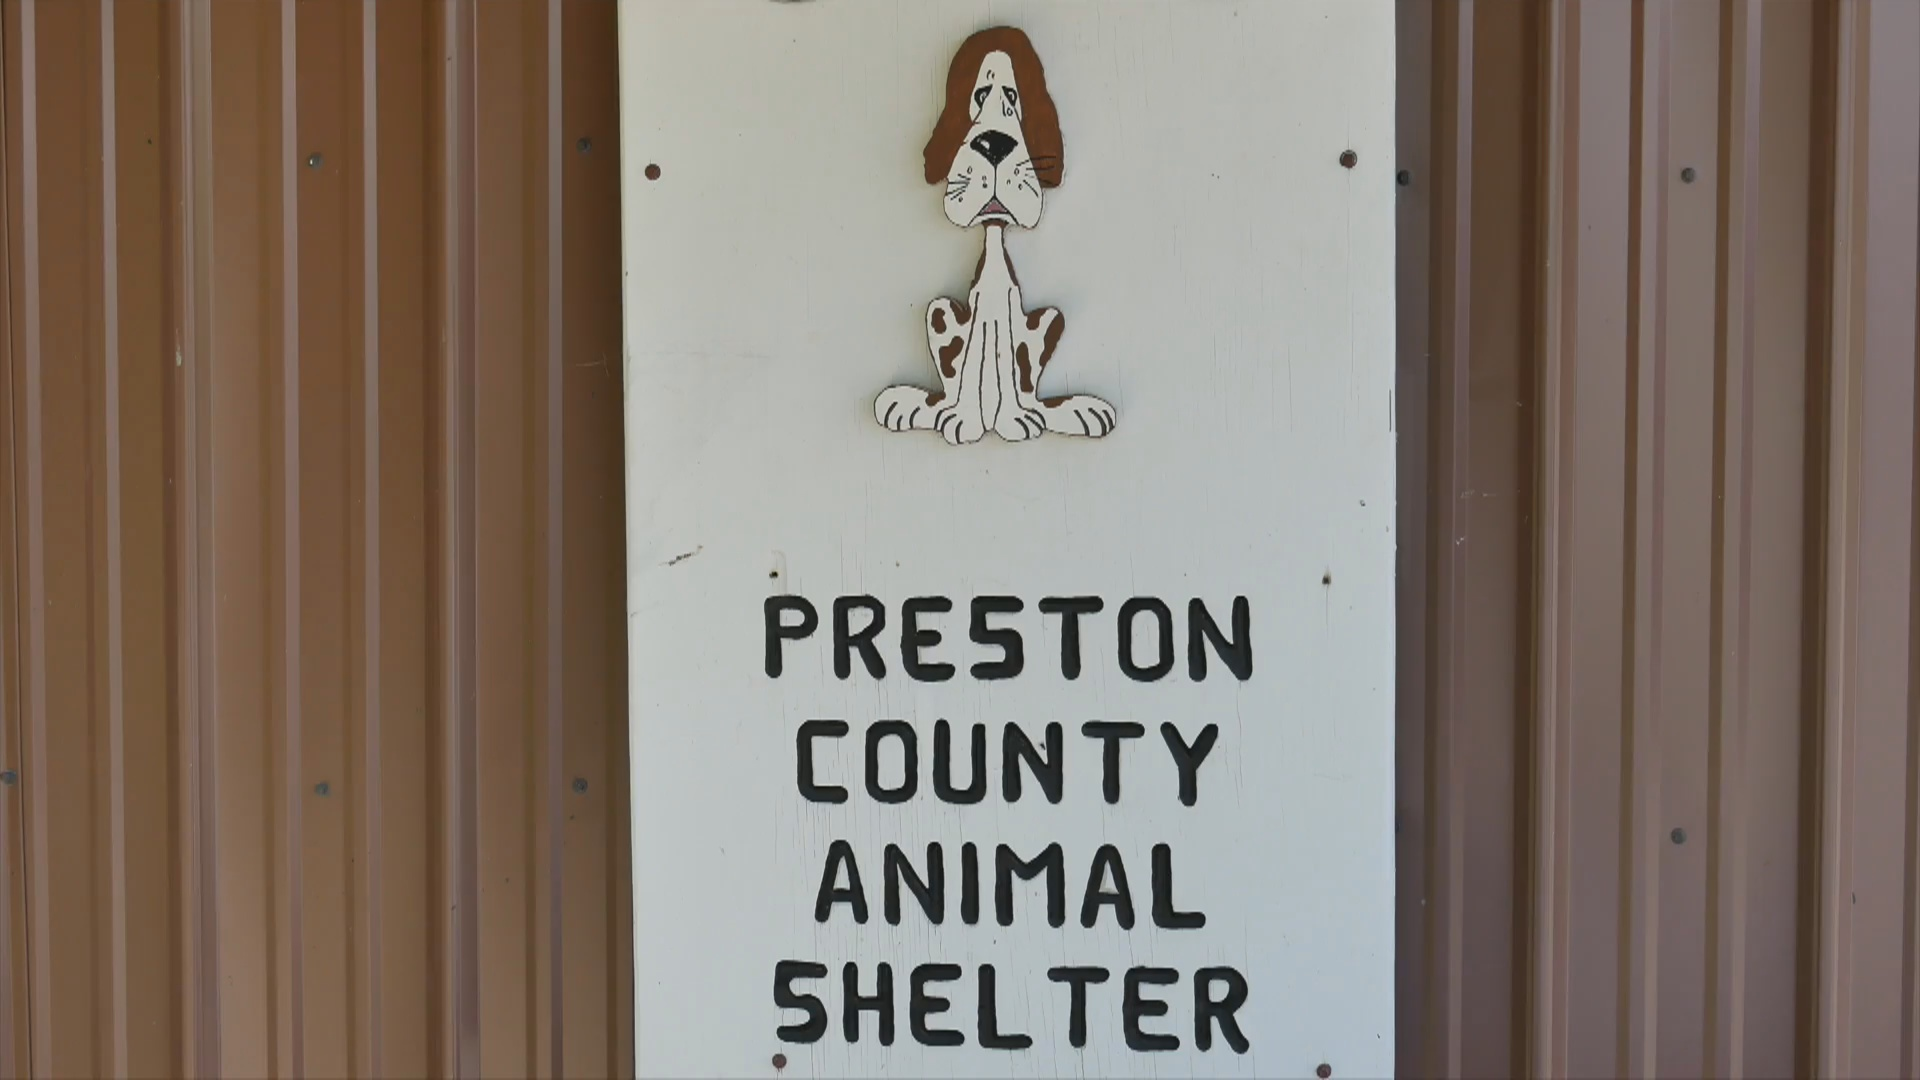 PRESTON COUNTY ANIMAL SHELTER.jpg